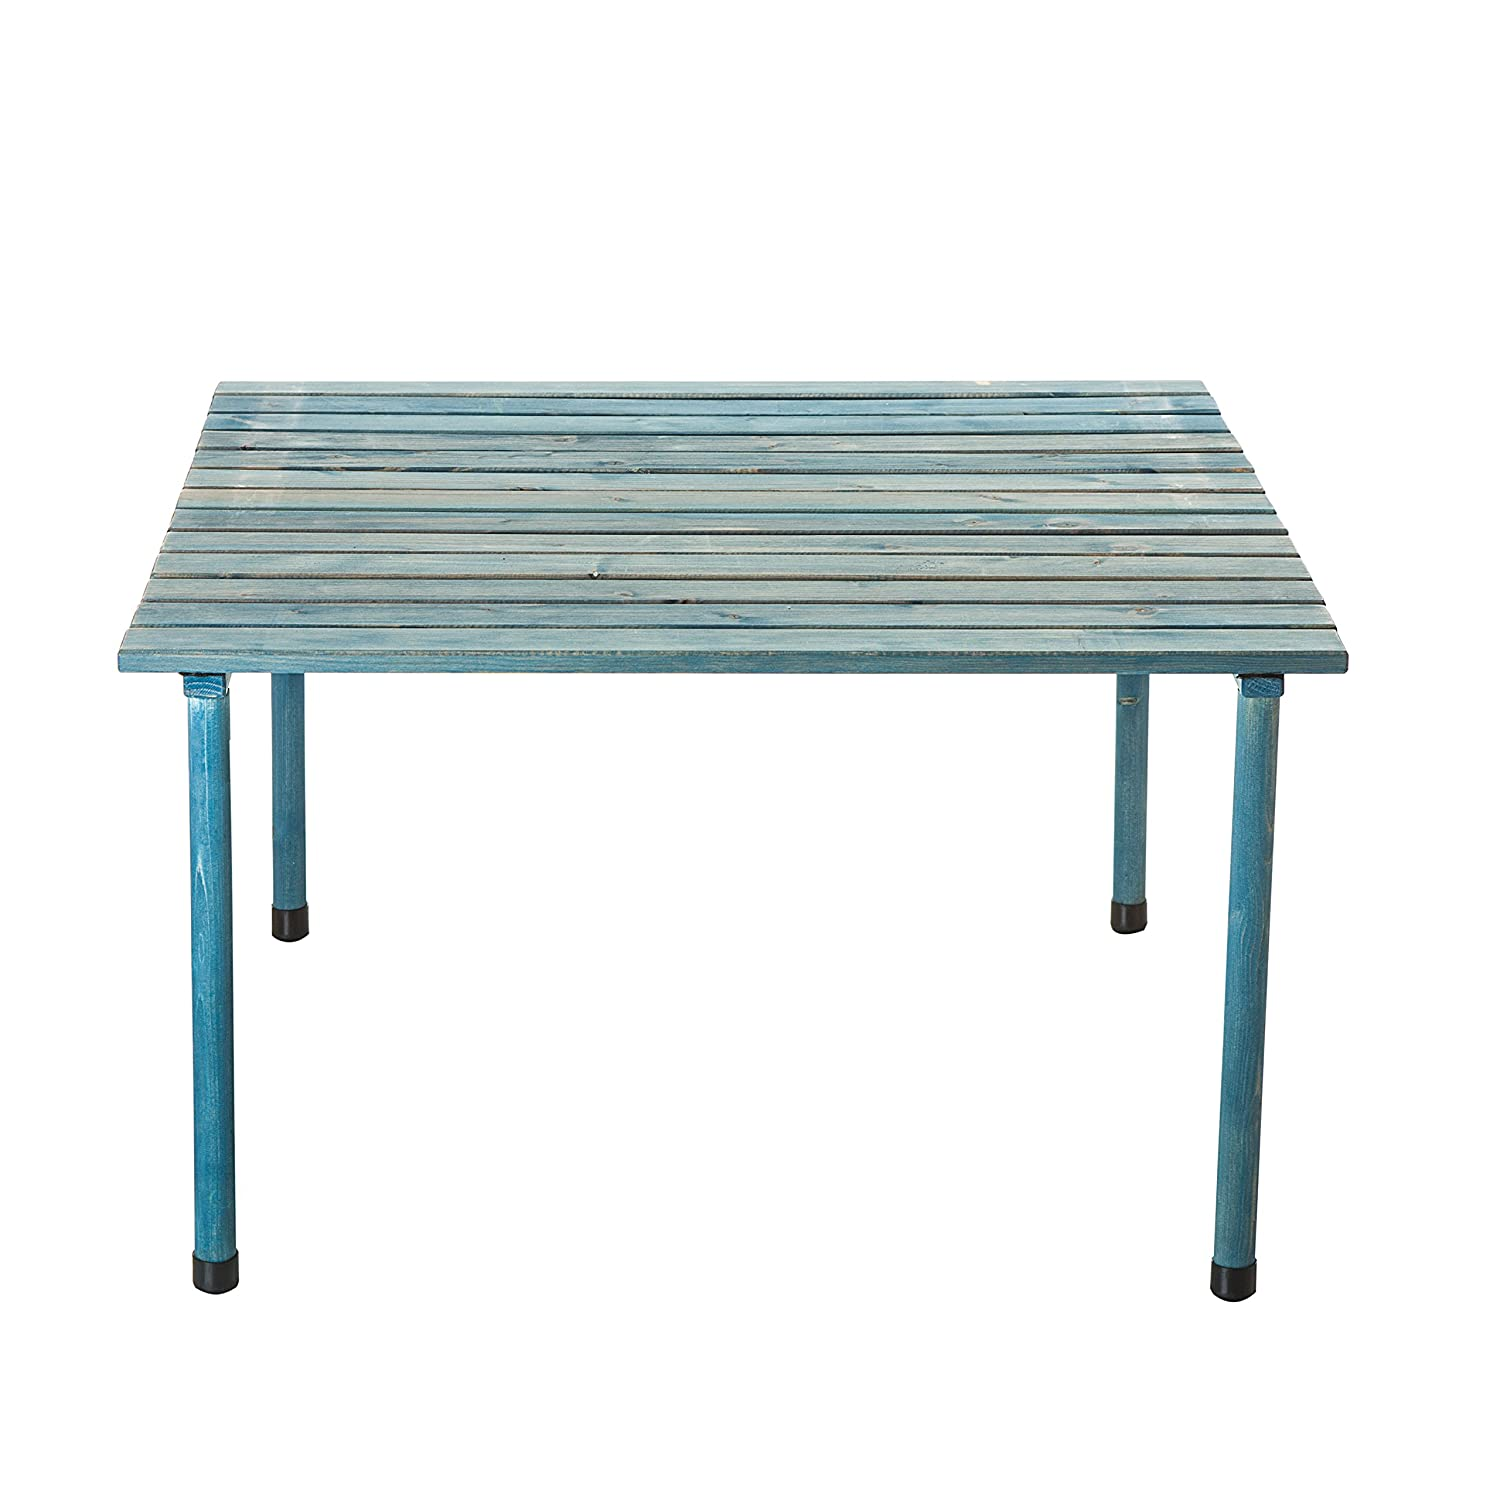 Amazon.com : VYTAL Roll-Up Picnic Table (Blue Wash) - Portable table ...